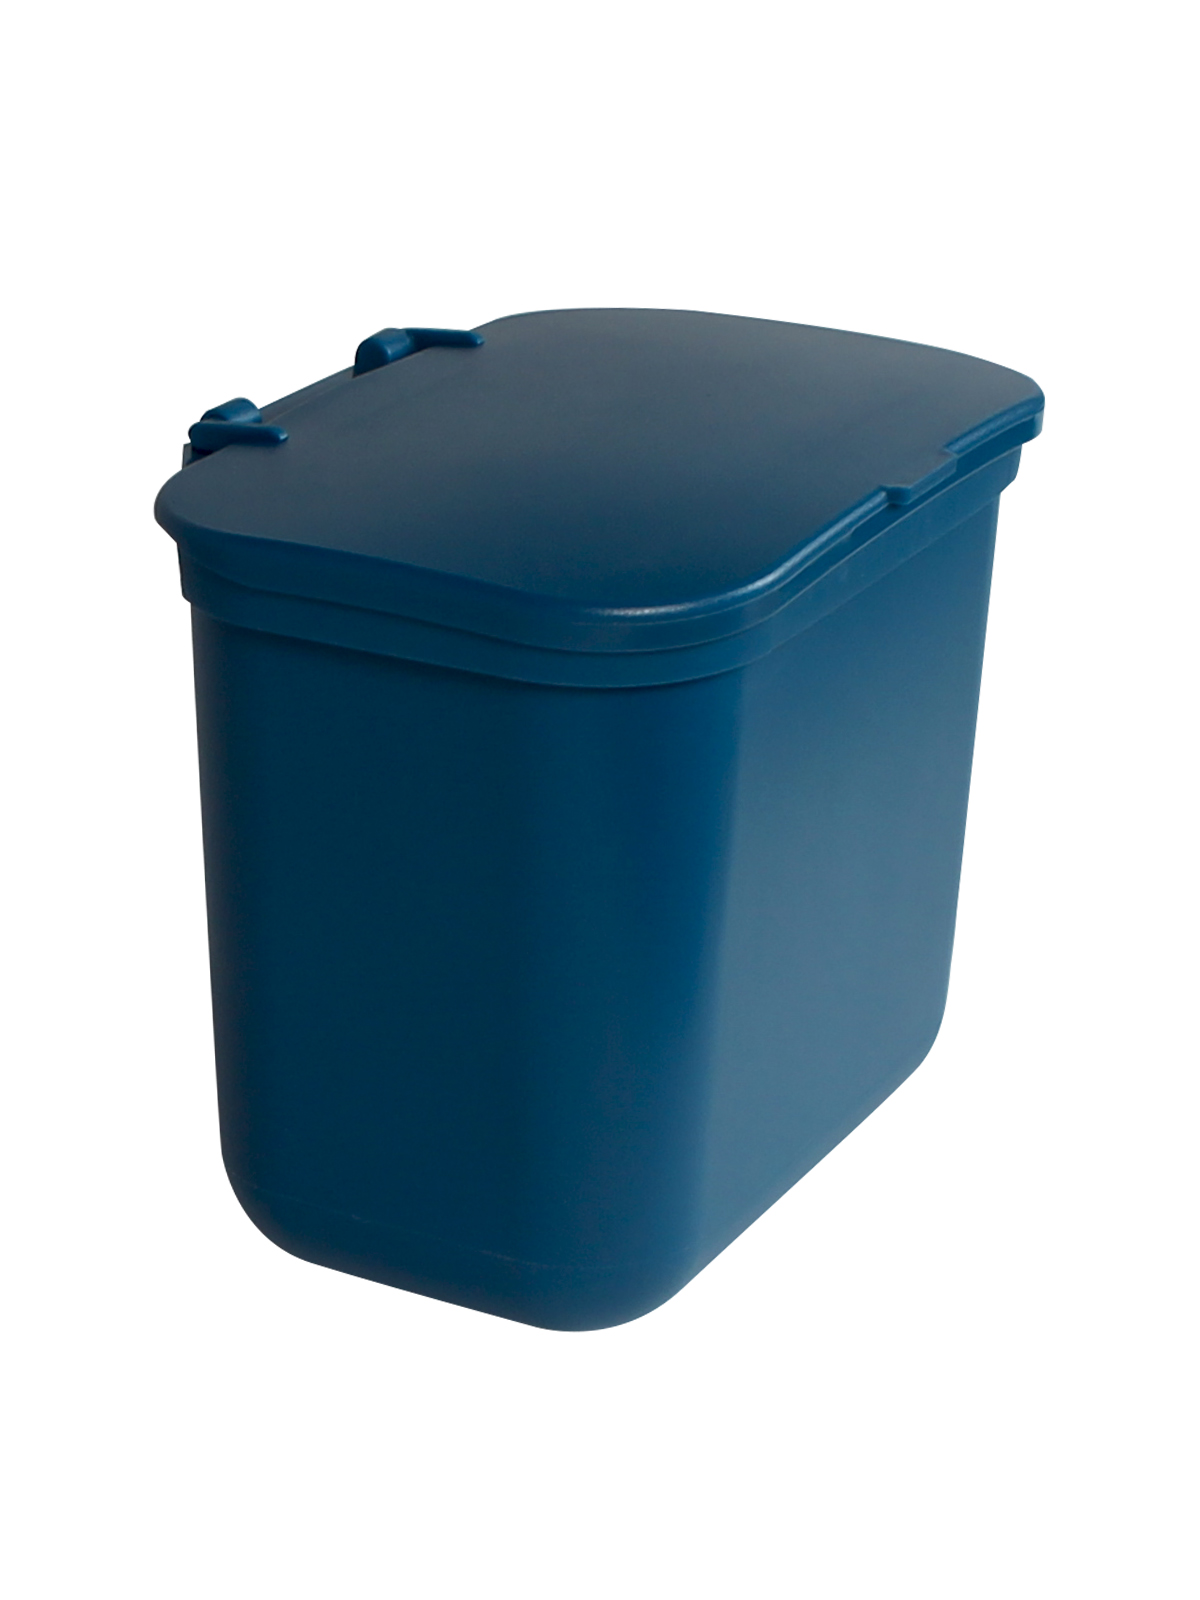 KIT HANGING WASTE BASKET W/ LID - BLU BLANK LID